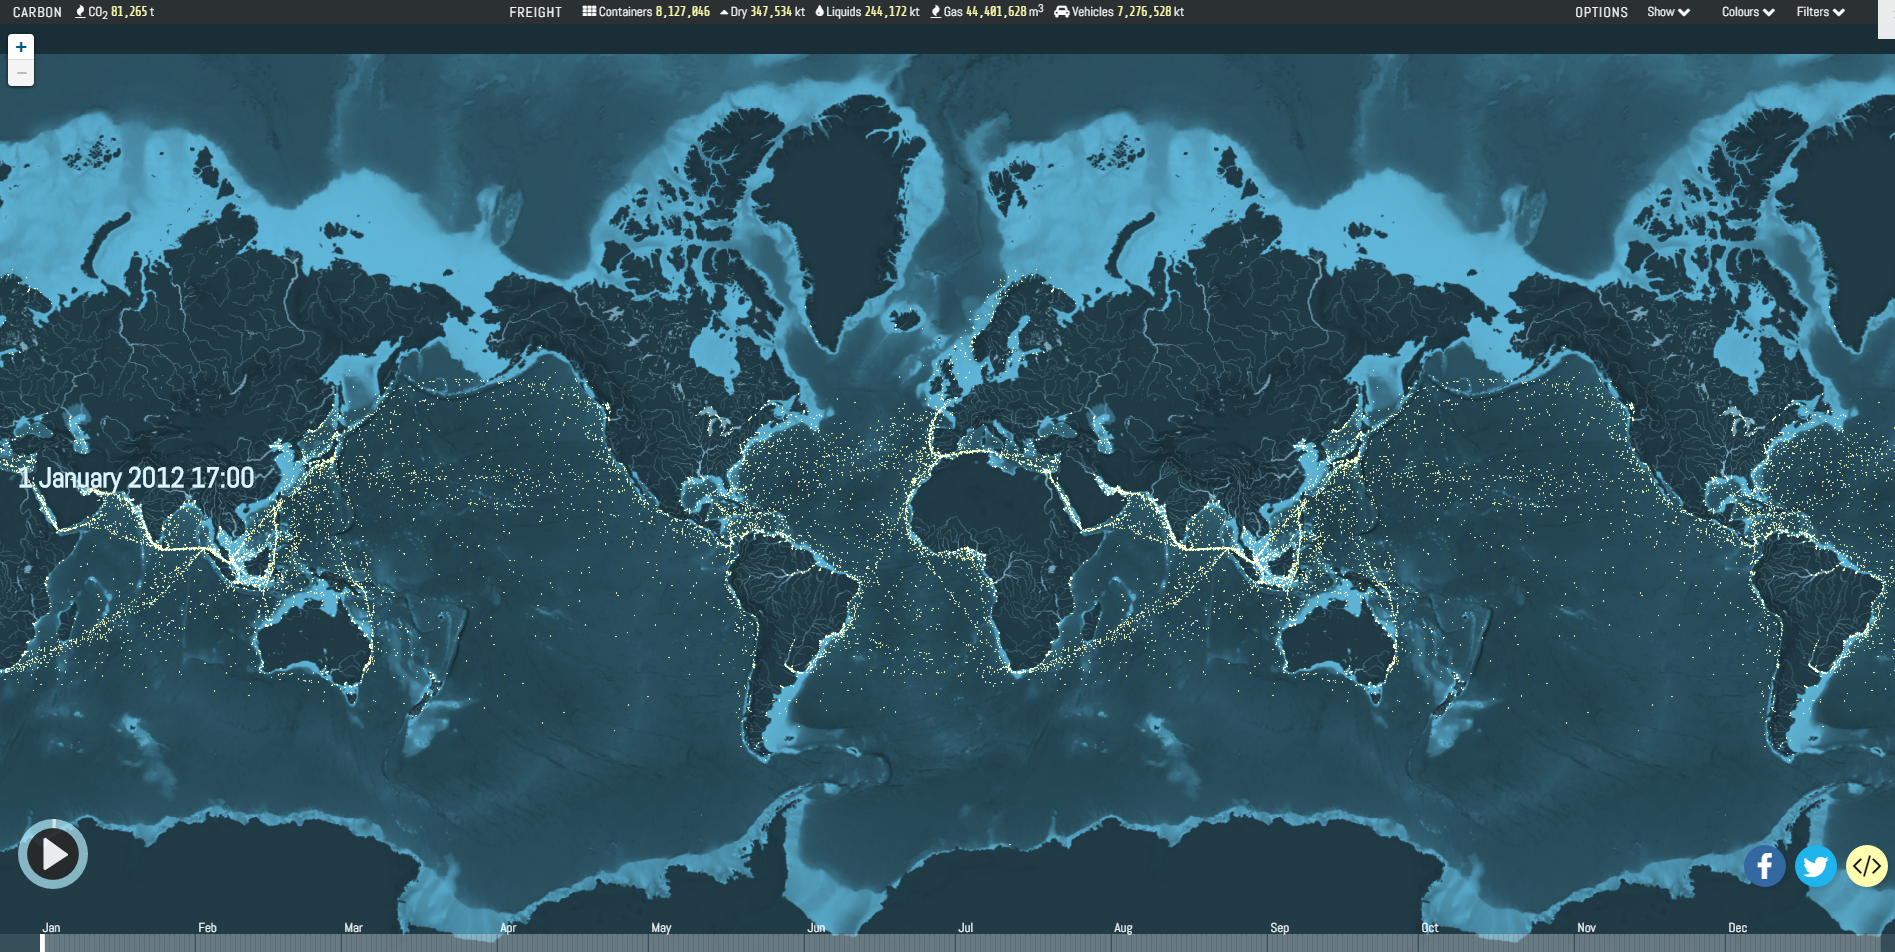 2012 global shipping routes mapped